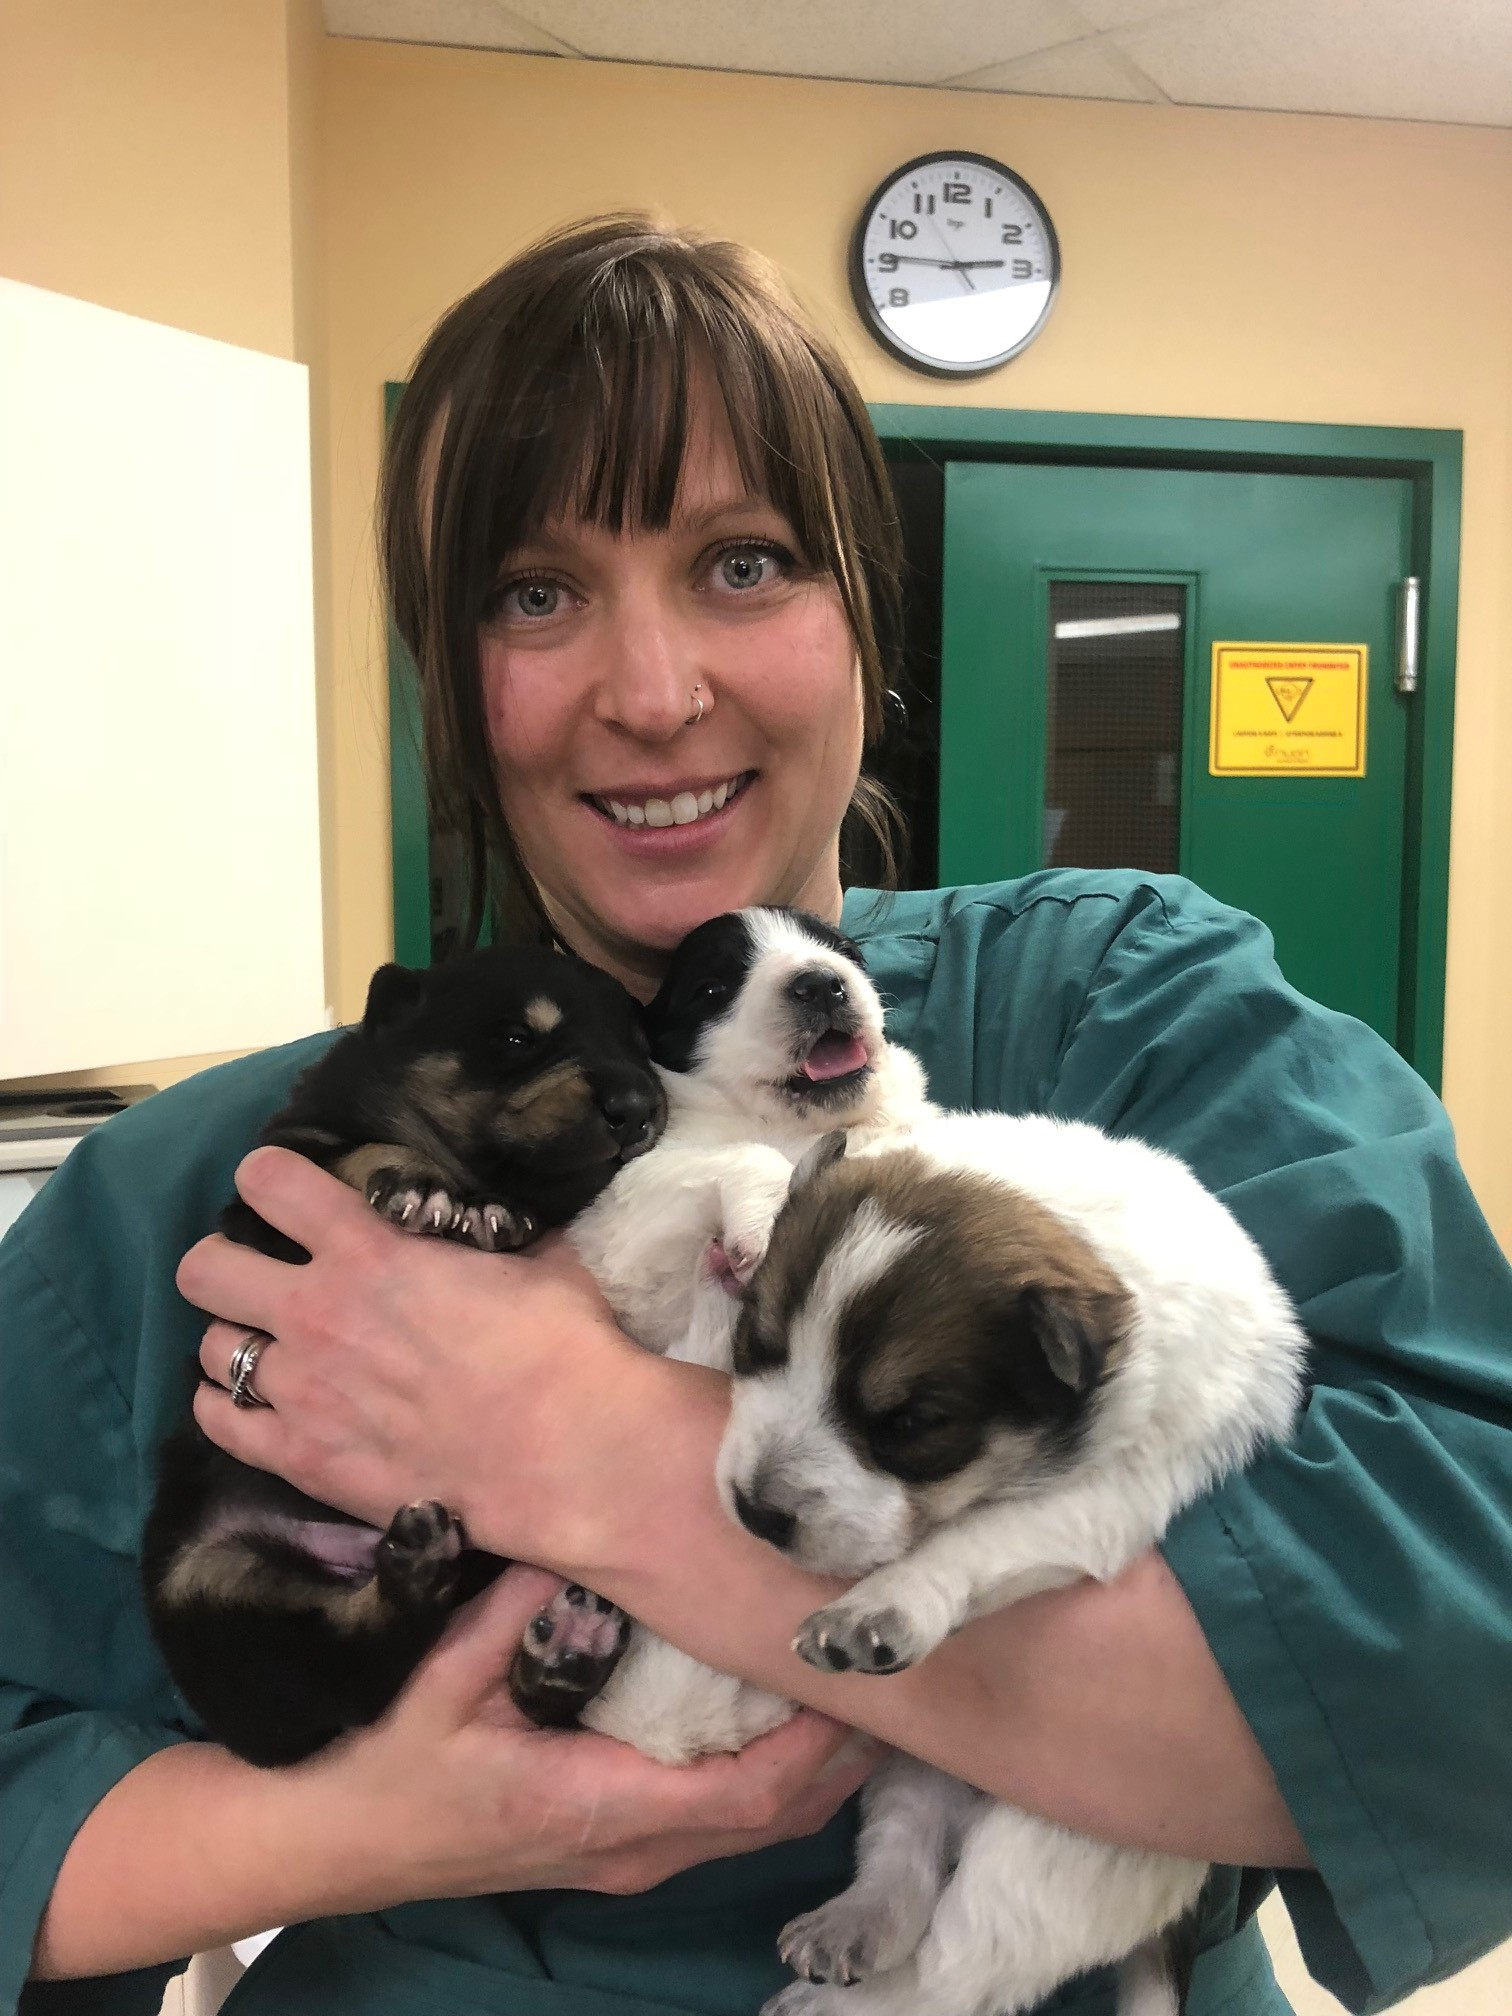 An armload of puppies!  These cuties were in for their check-ups from the SPCA.